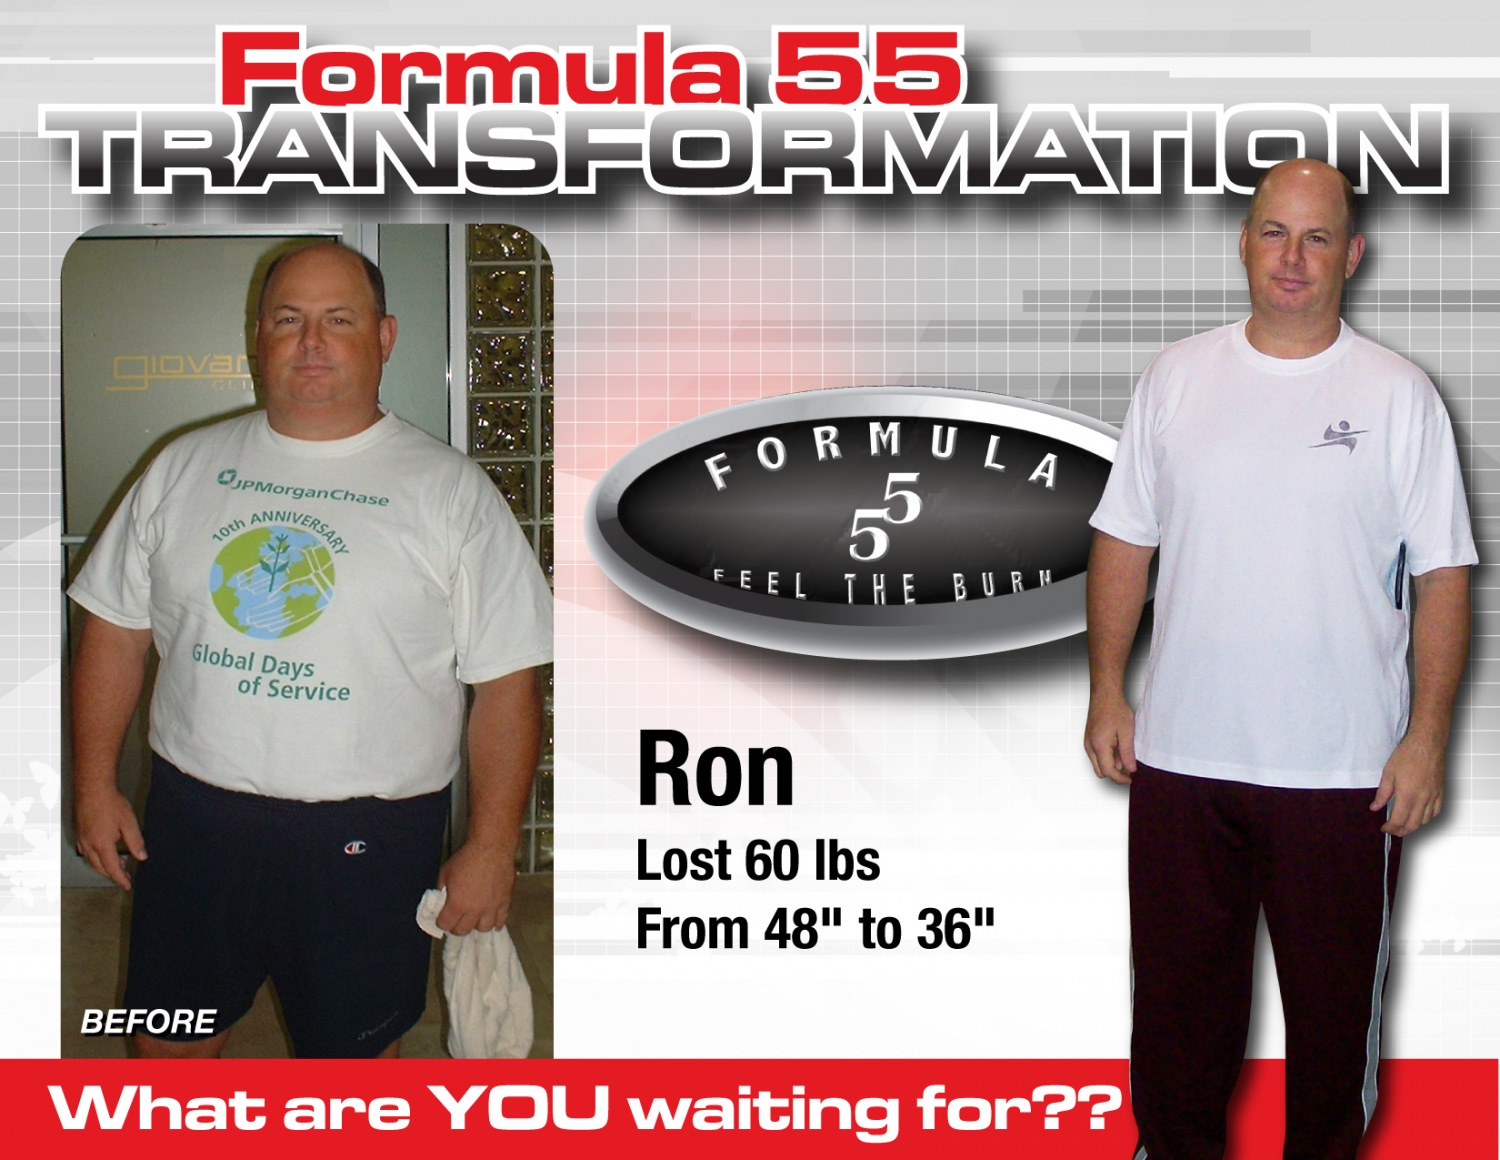 form_55_Transformation_Ron.jpg